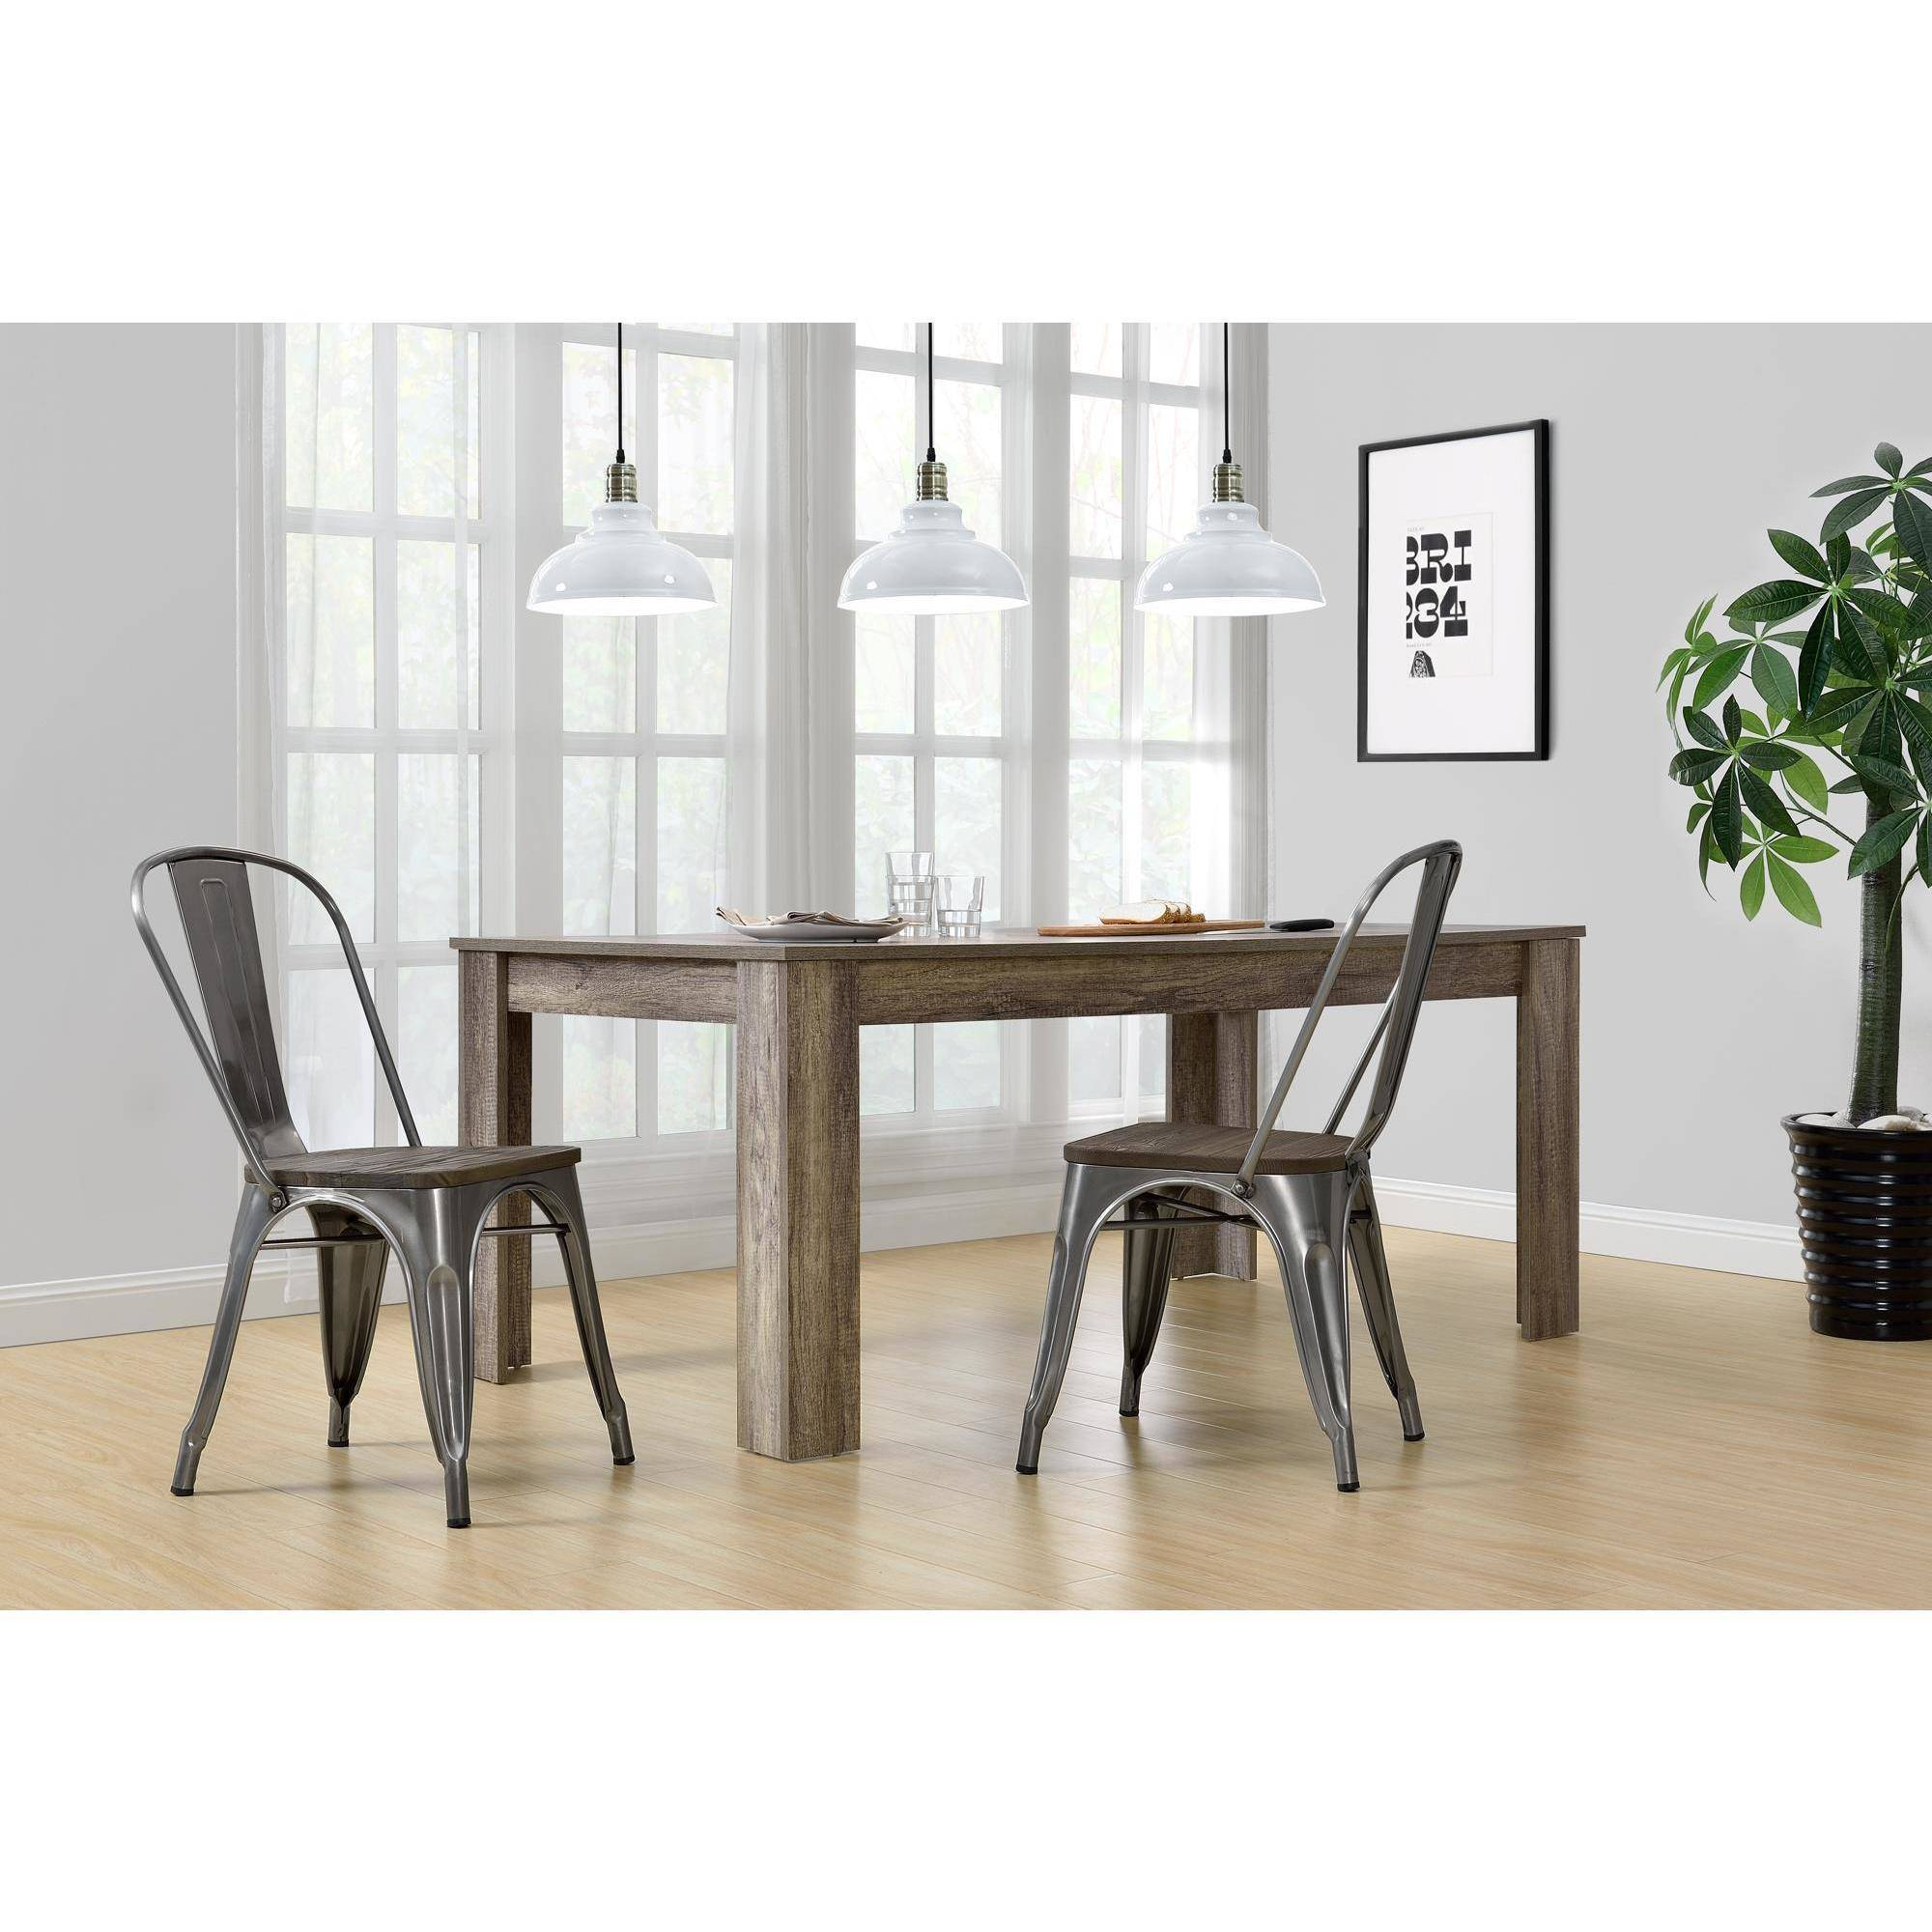 dorel home products fusion metal dining chair with wood seat, set